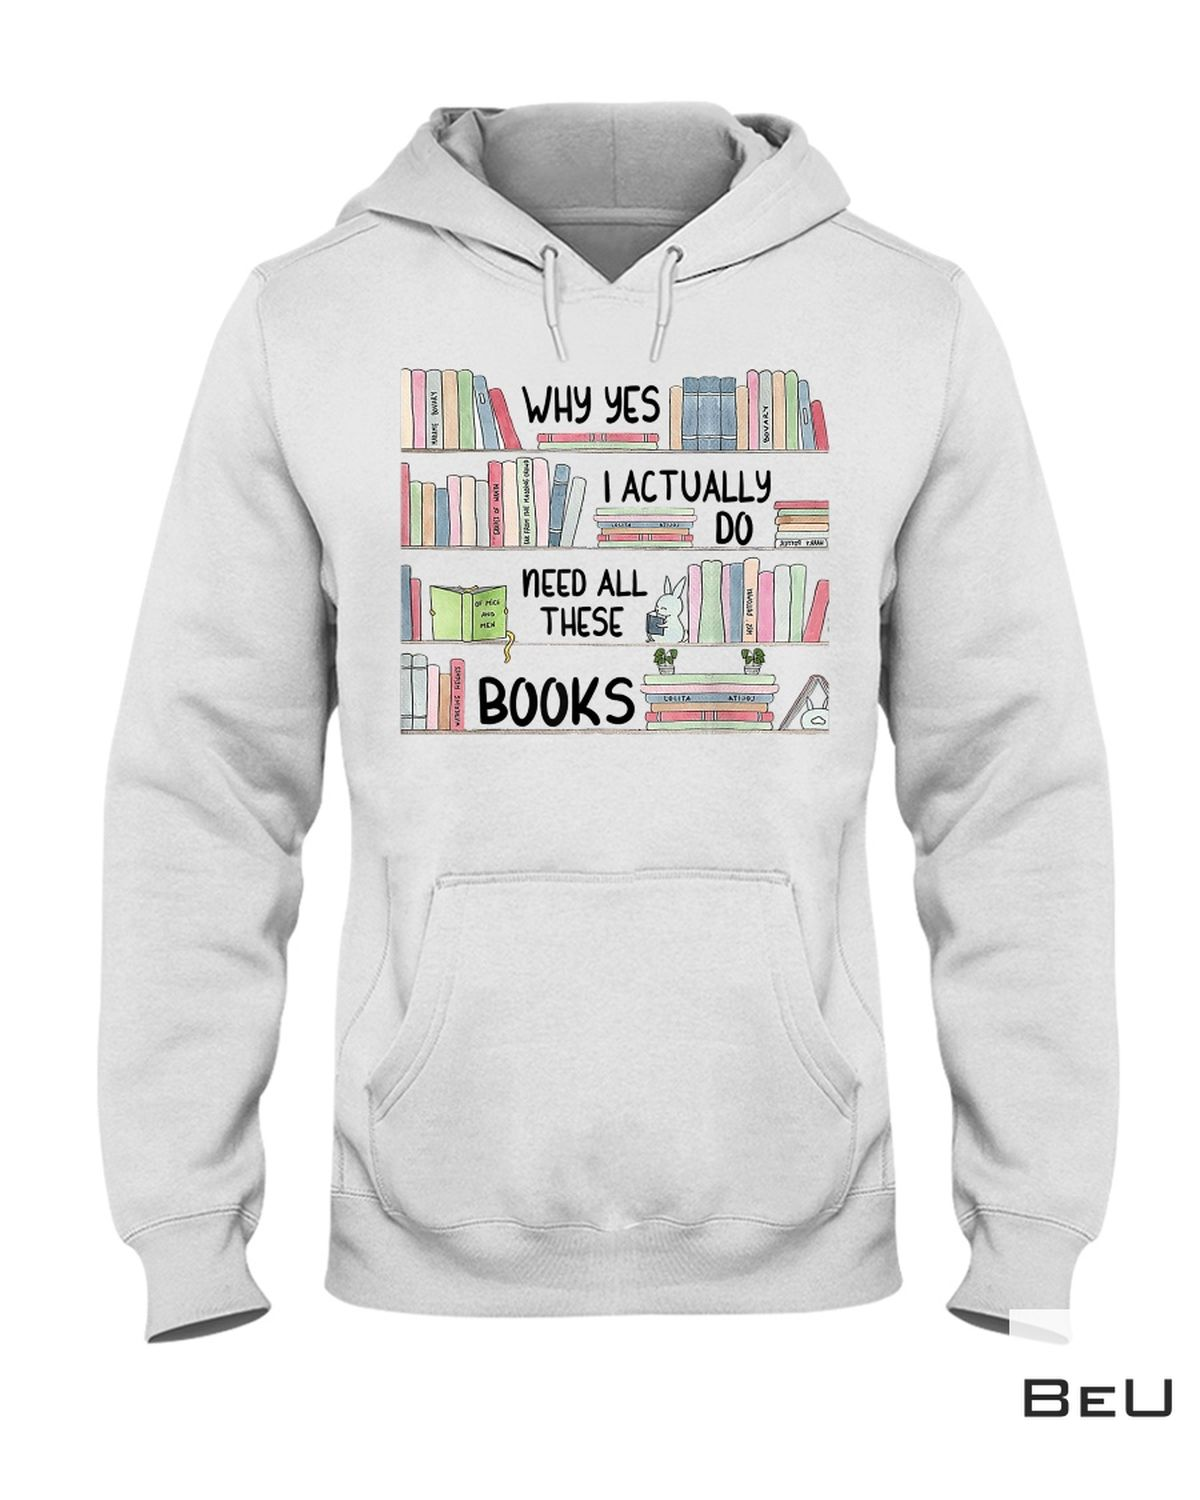 Adorable Why Yes I Actually Do Need All These Books Shirt